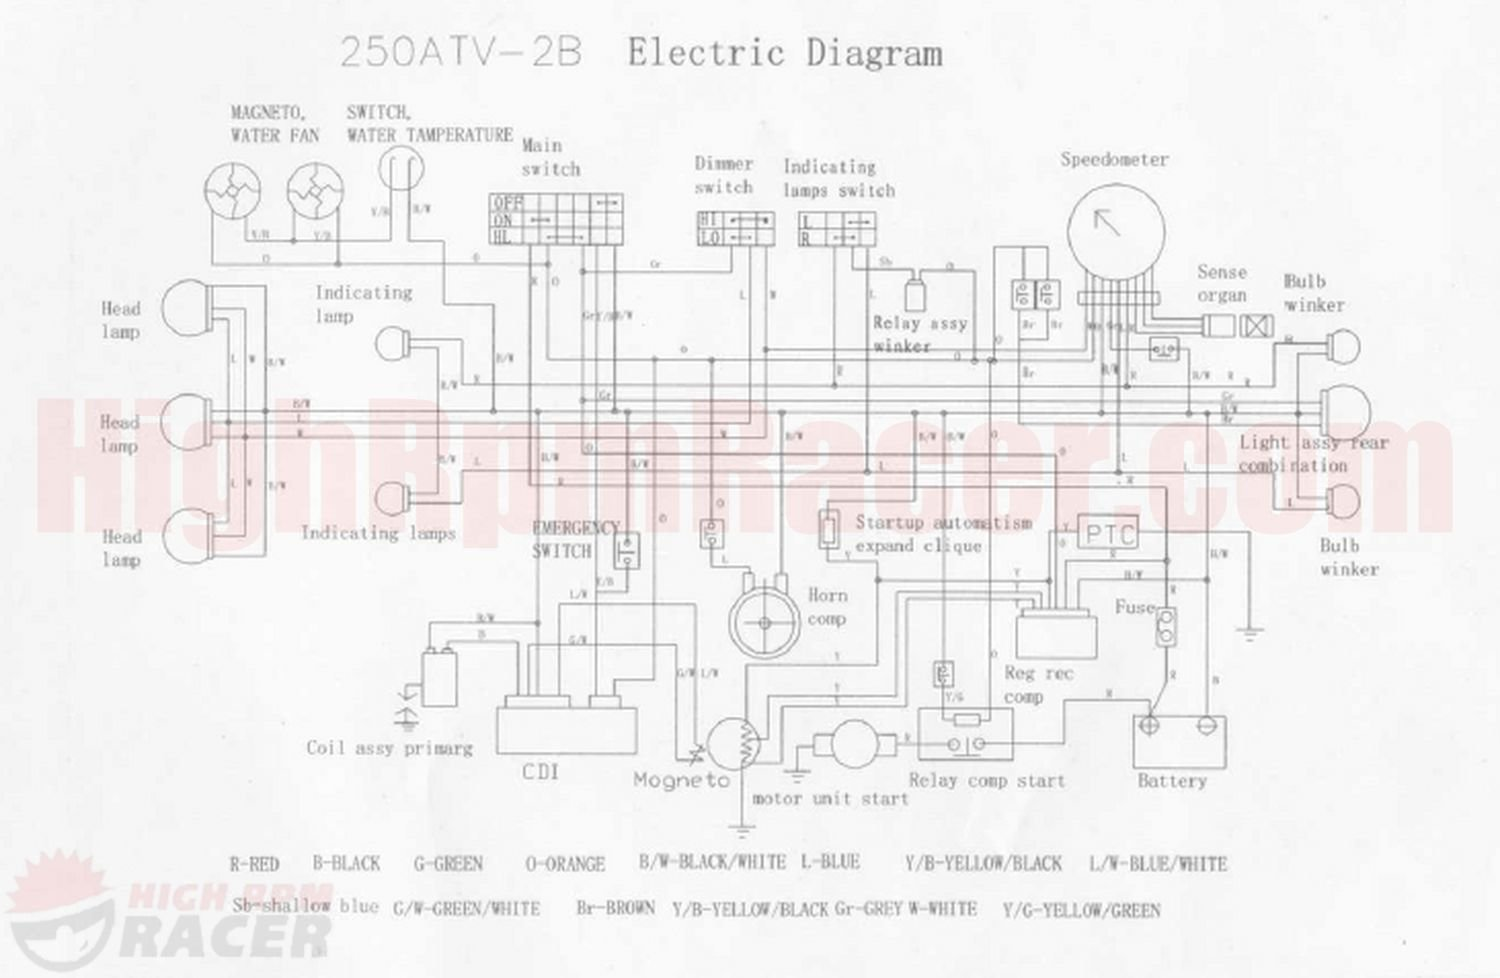 roketa250_wd roketa atv 250 wiring diagram $0 00 coolster 110 atv wiring diagram at edmiracle.co